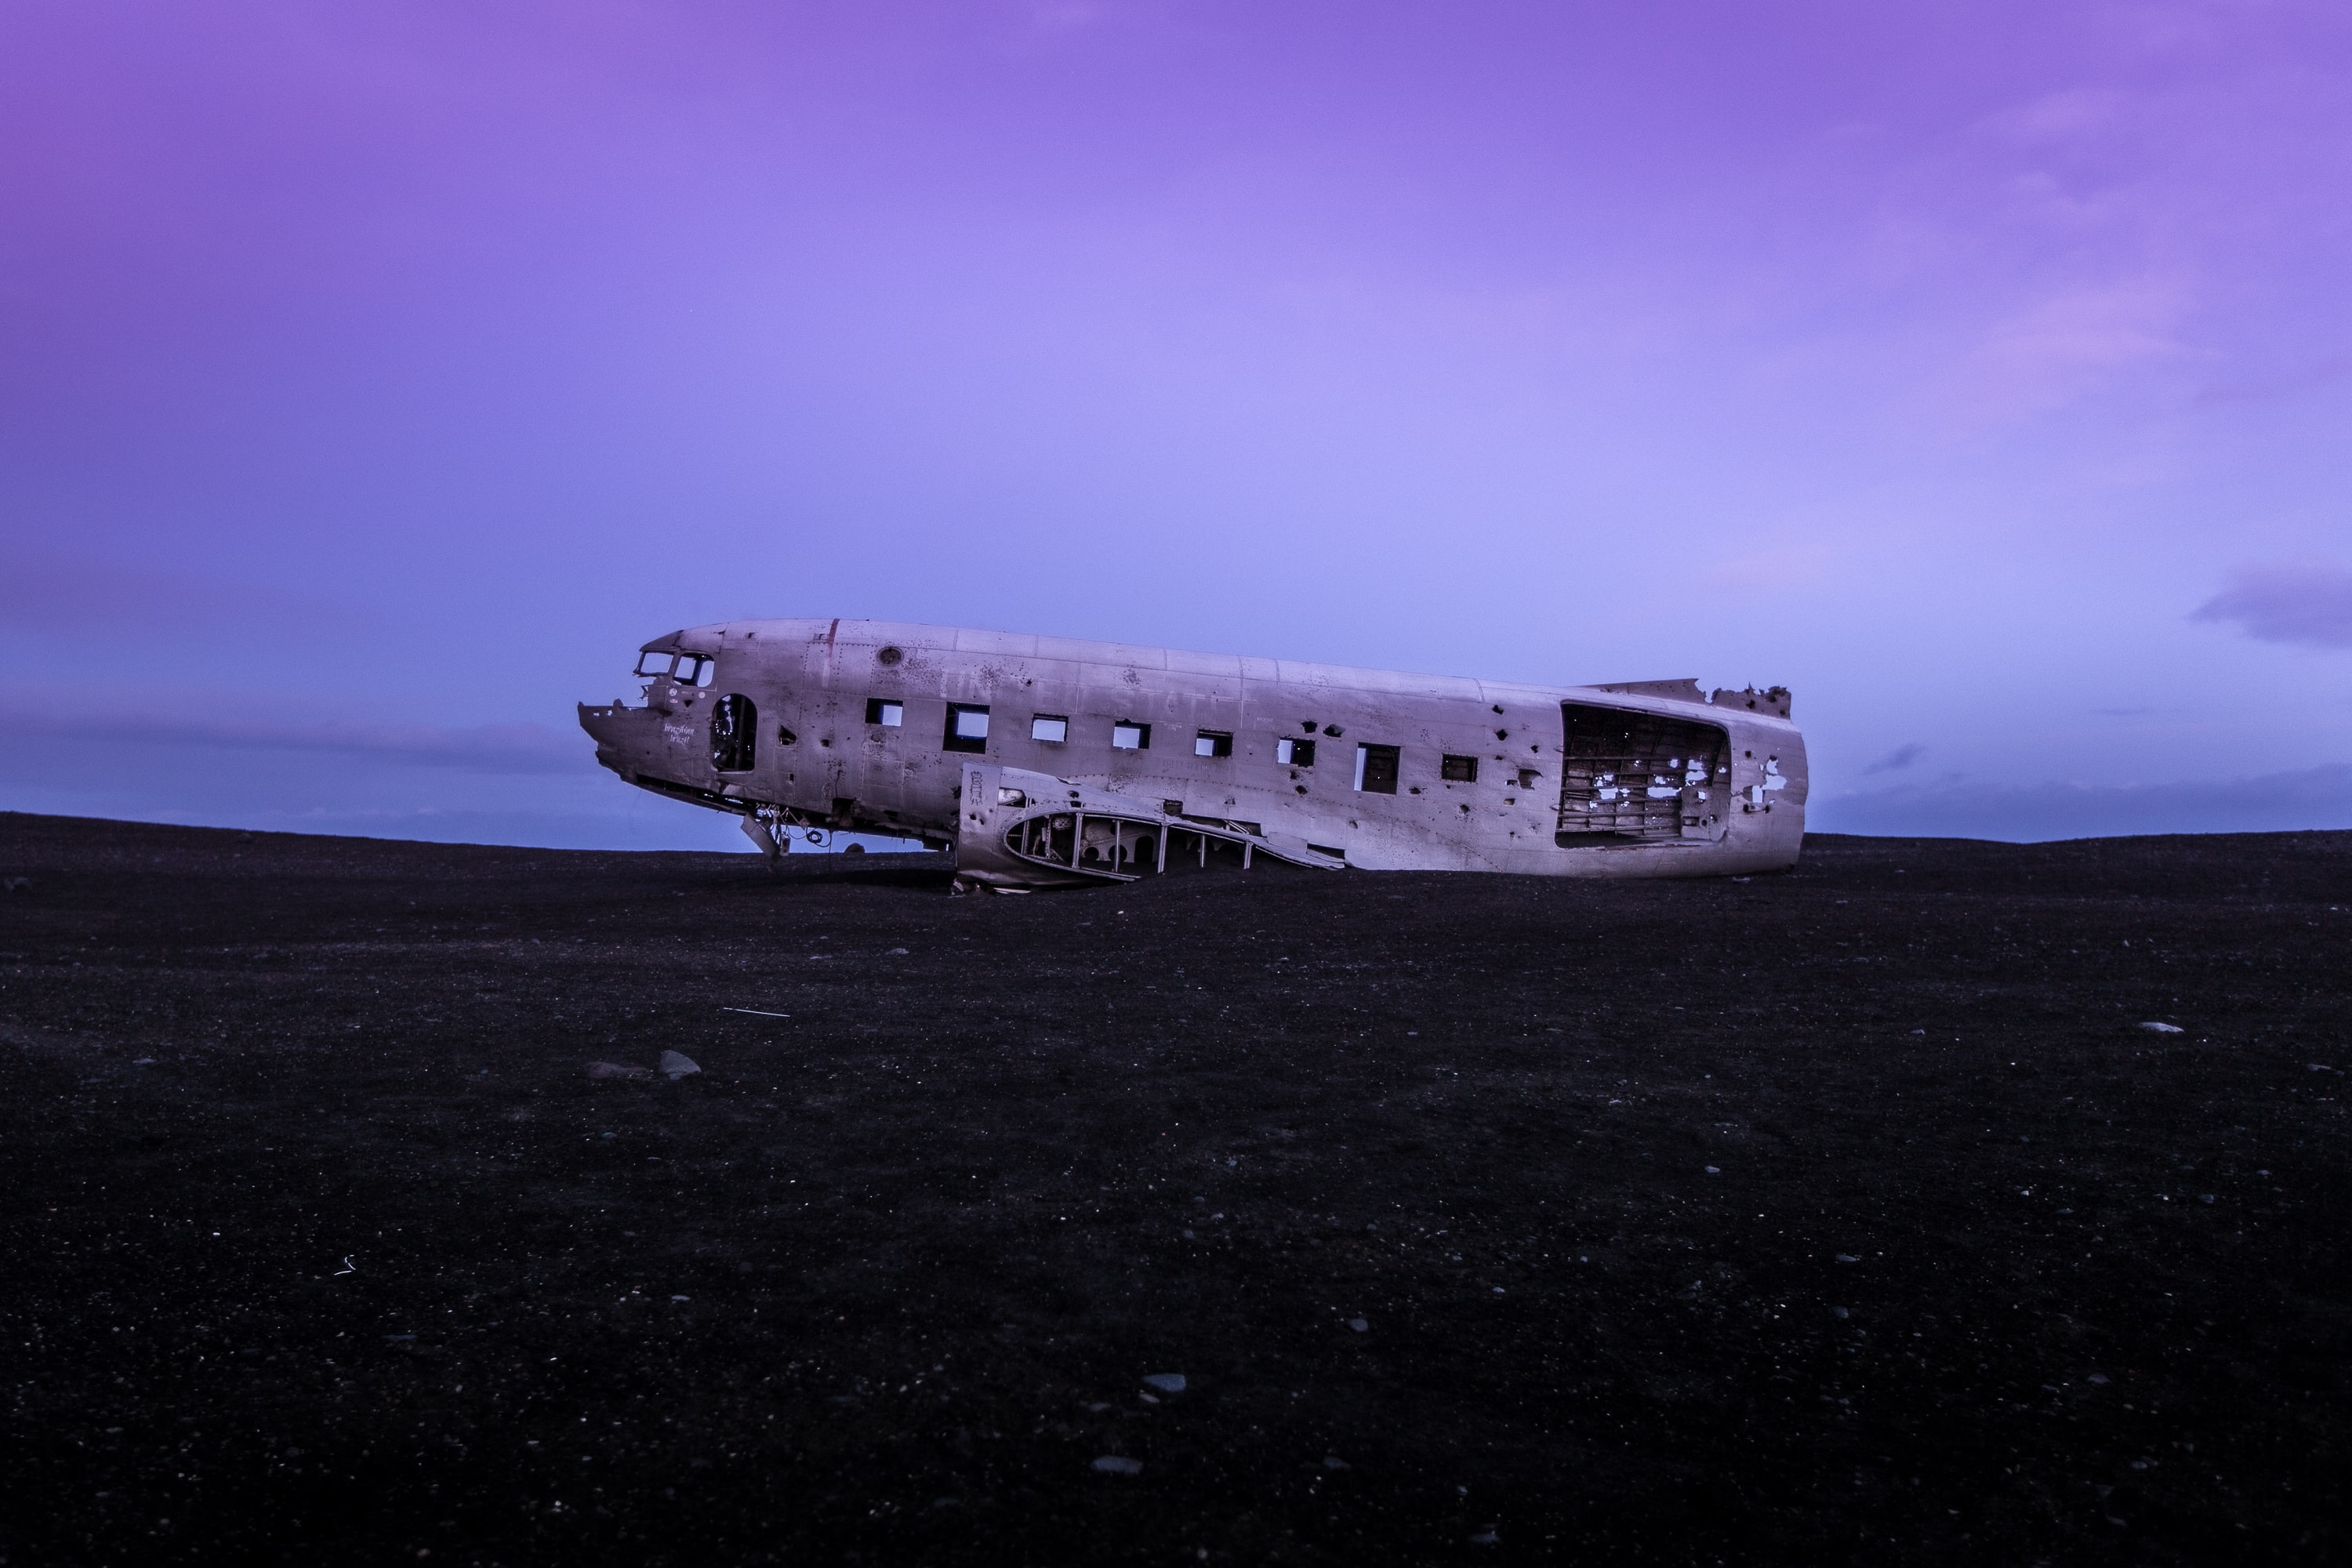 crashed airplane on brown soil